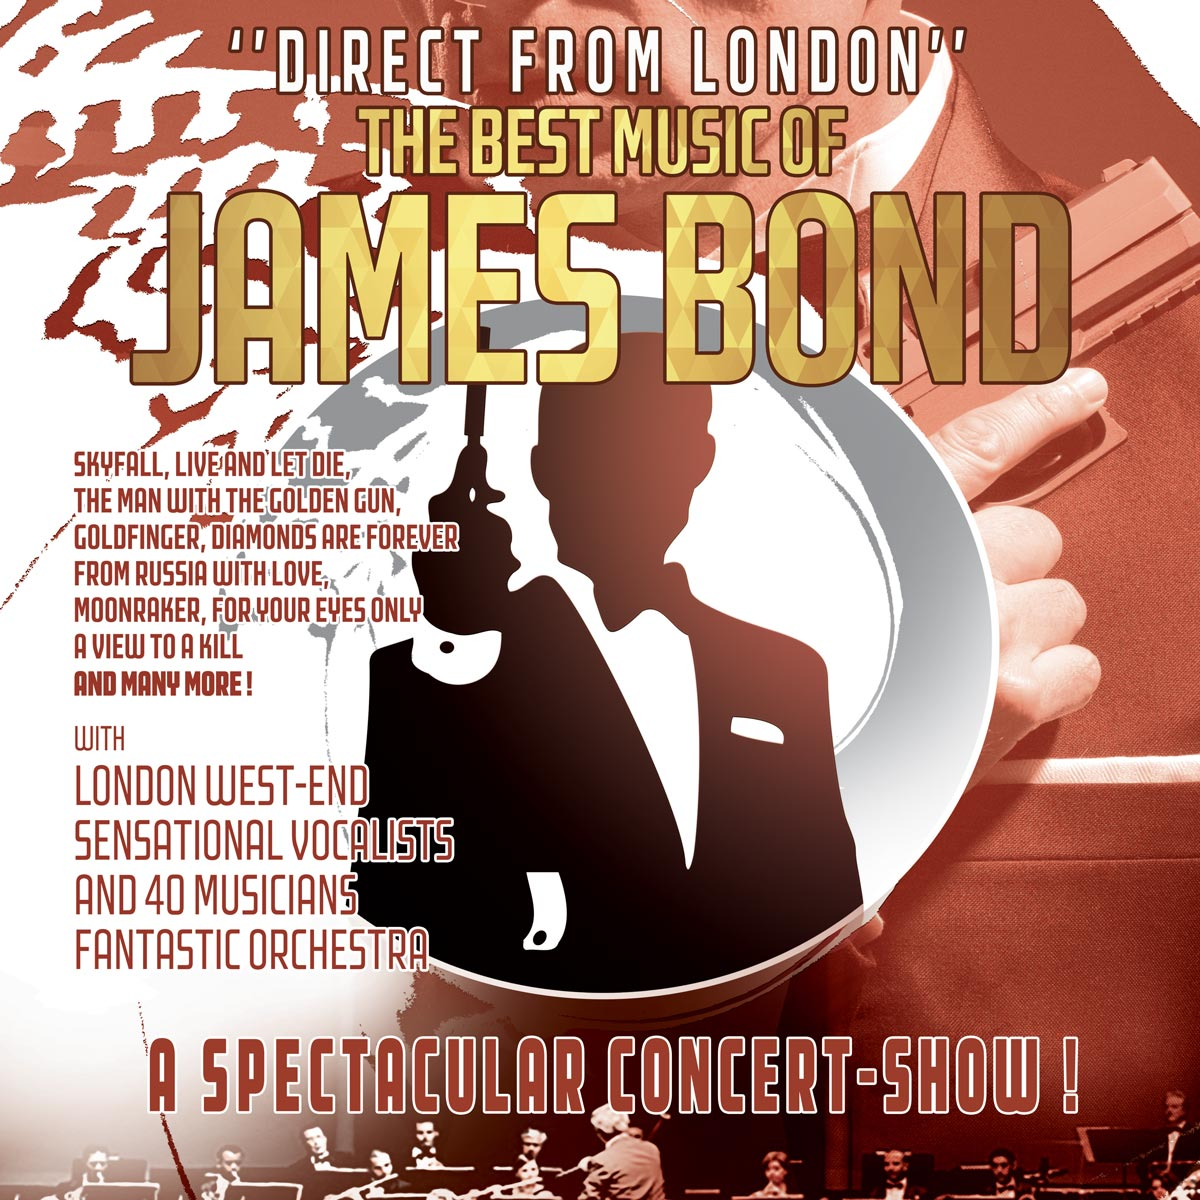 Direct from London, The best music of James Bond, ''direct from London'' the best musics of James Bond, with London West-End sensational vocalists and 40 musicians FANTASTIC orchestra